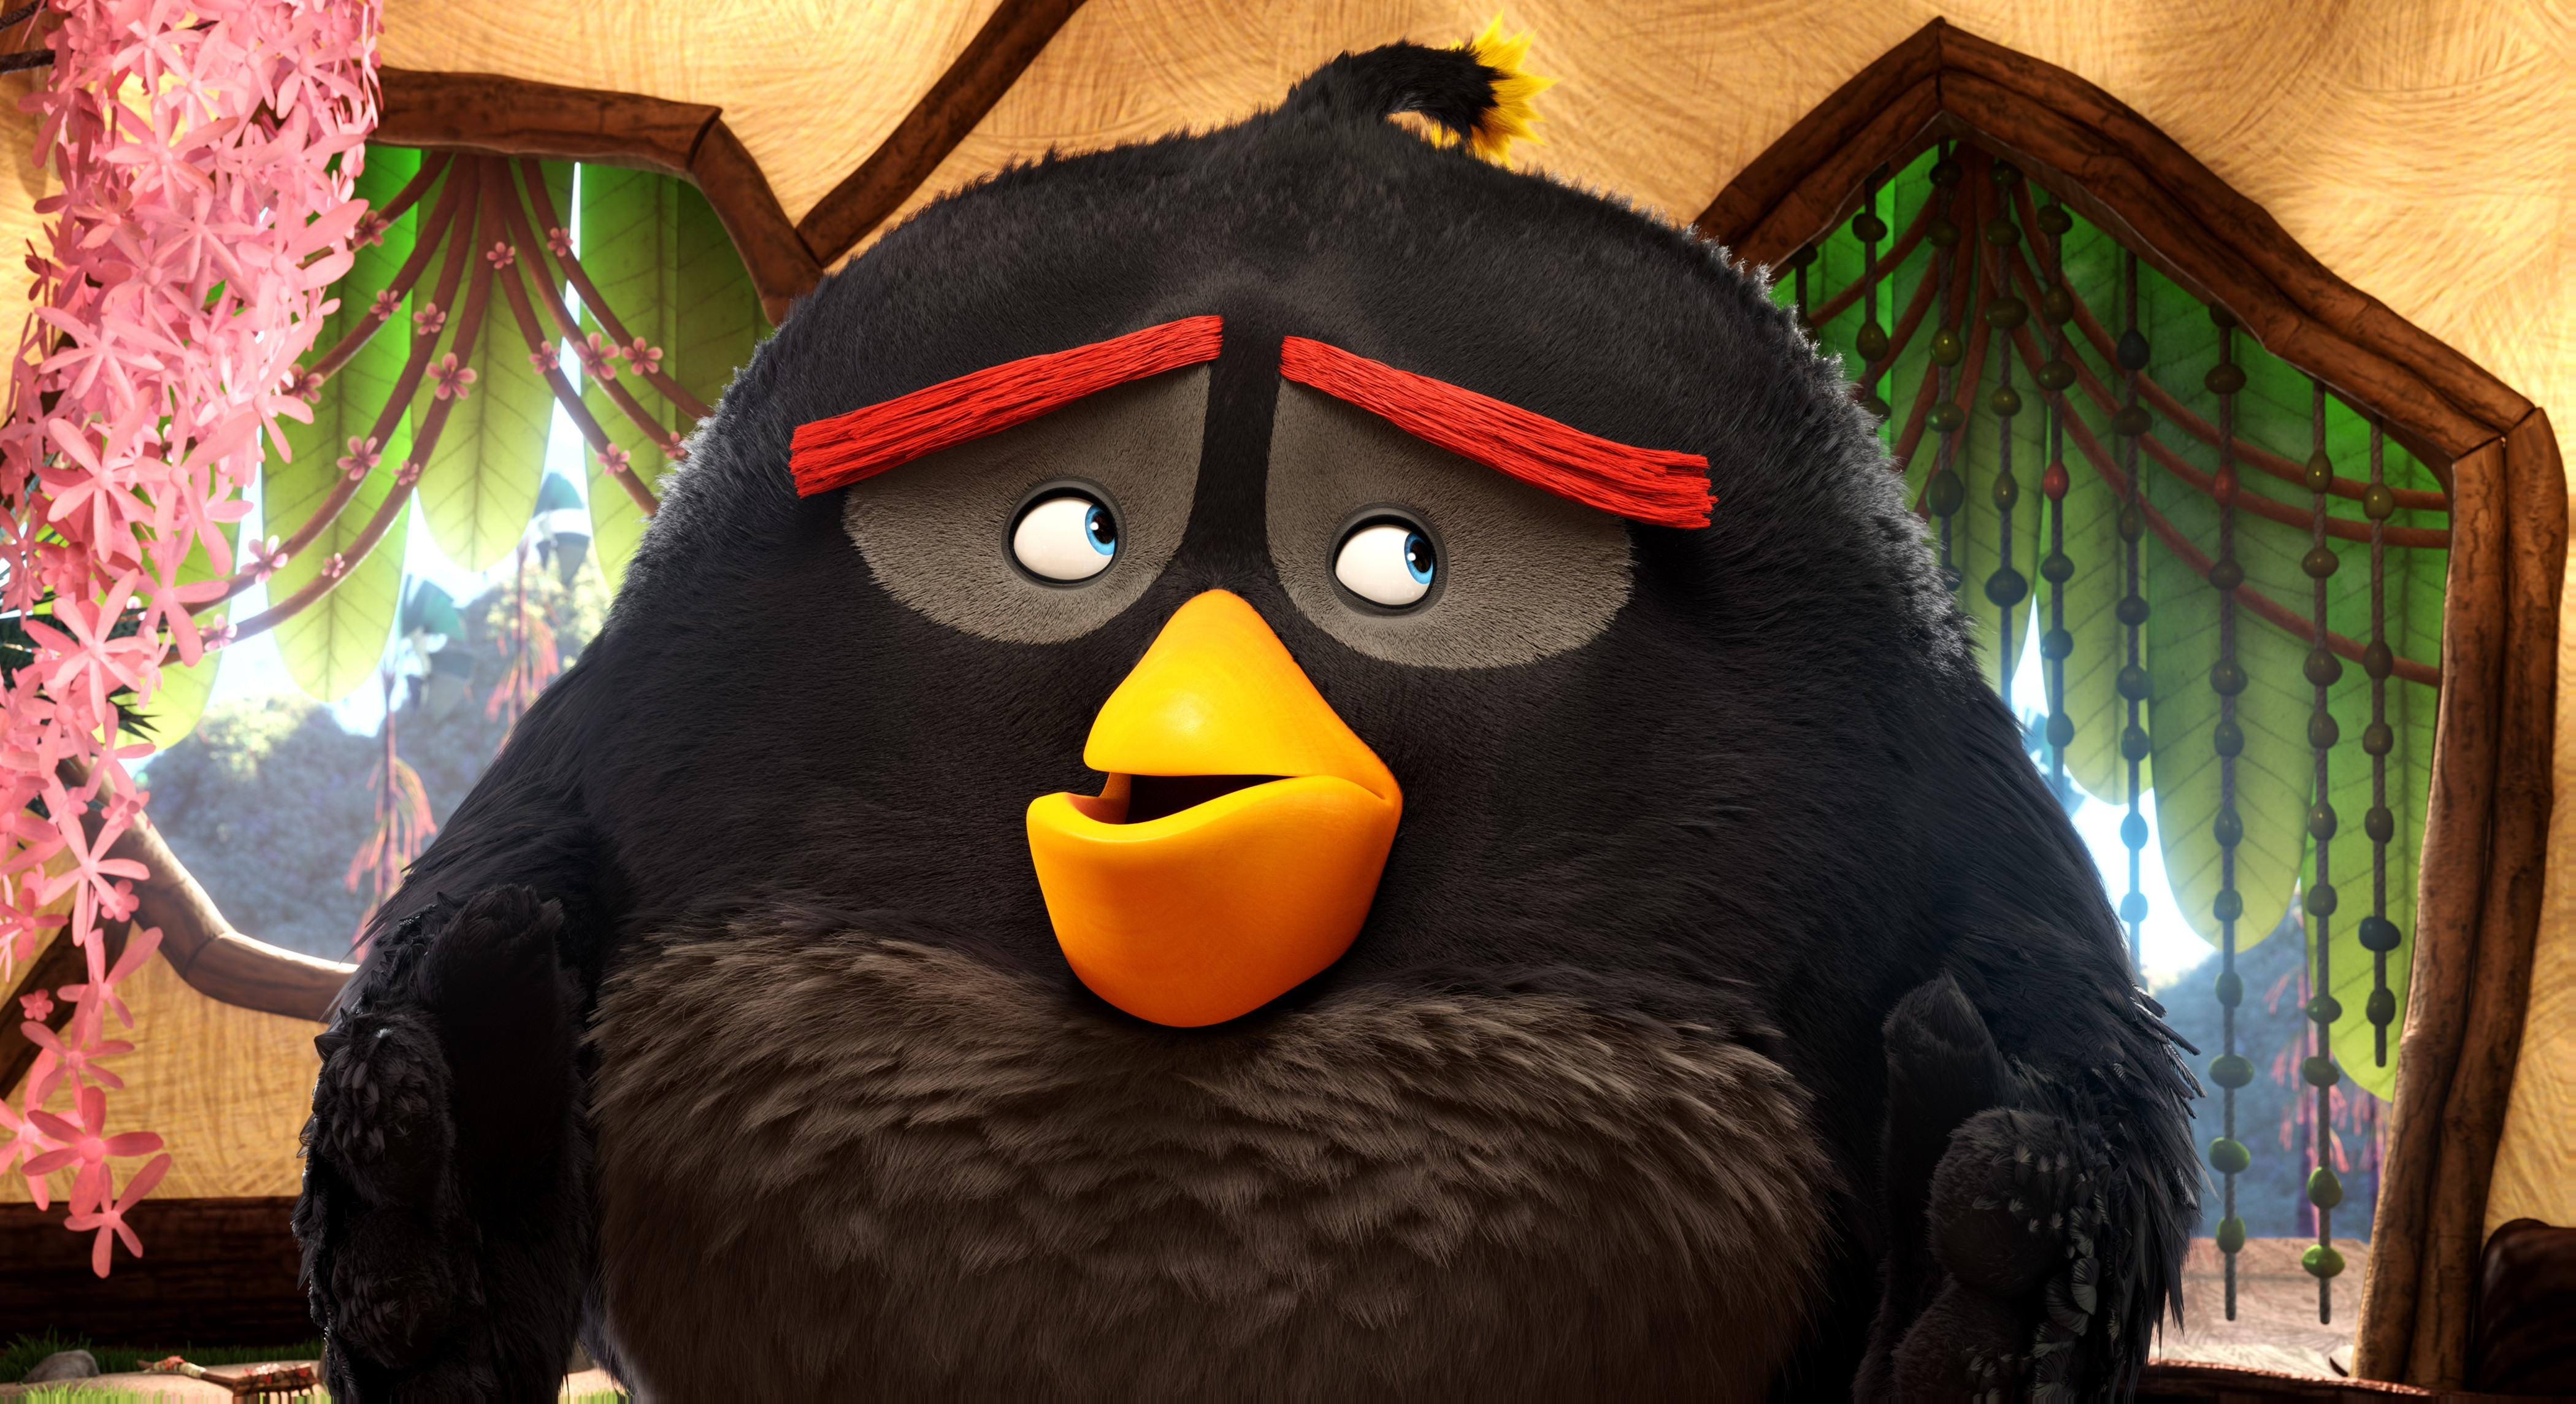 https://img3.goodfon.ru/original/4200x2289/9/af/angry-birds-the-movie-2015-6522.jpg